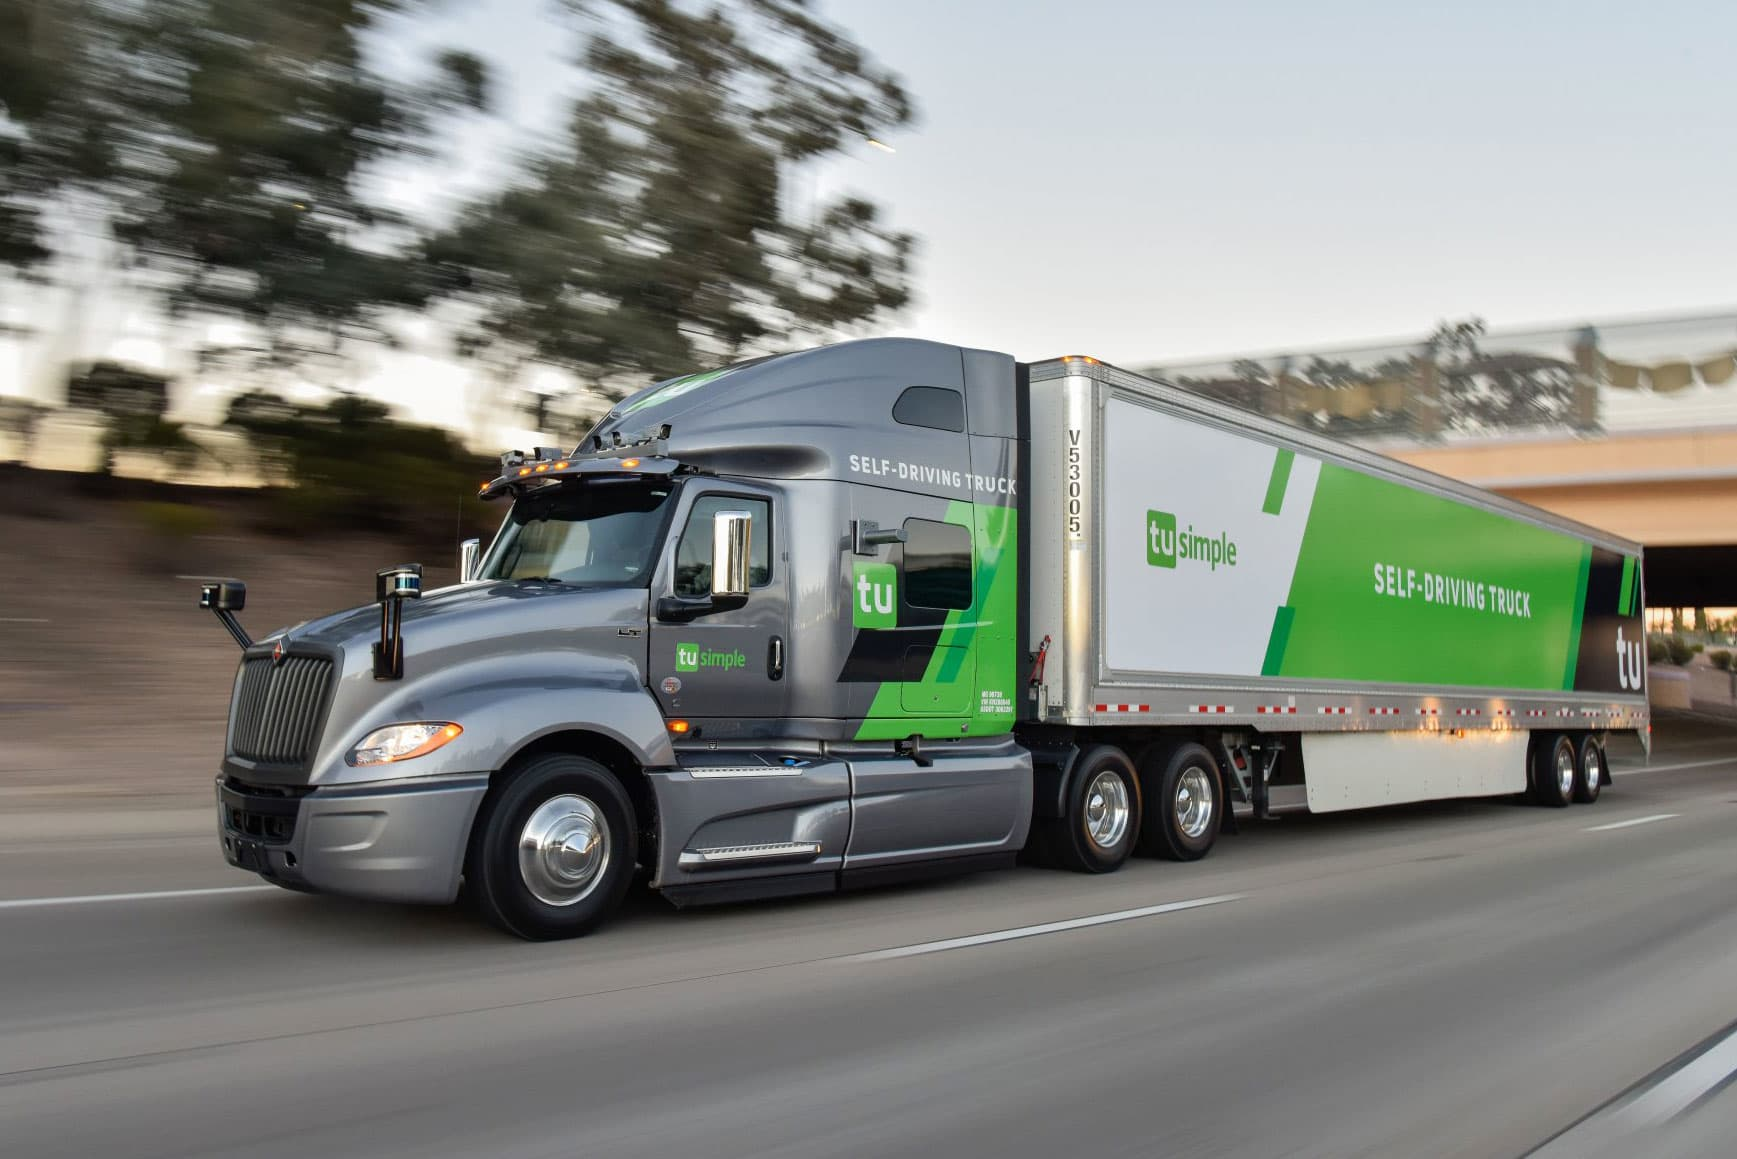 Self-driving trucks likely to hit the roads before passenger cars